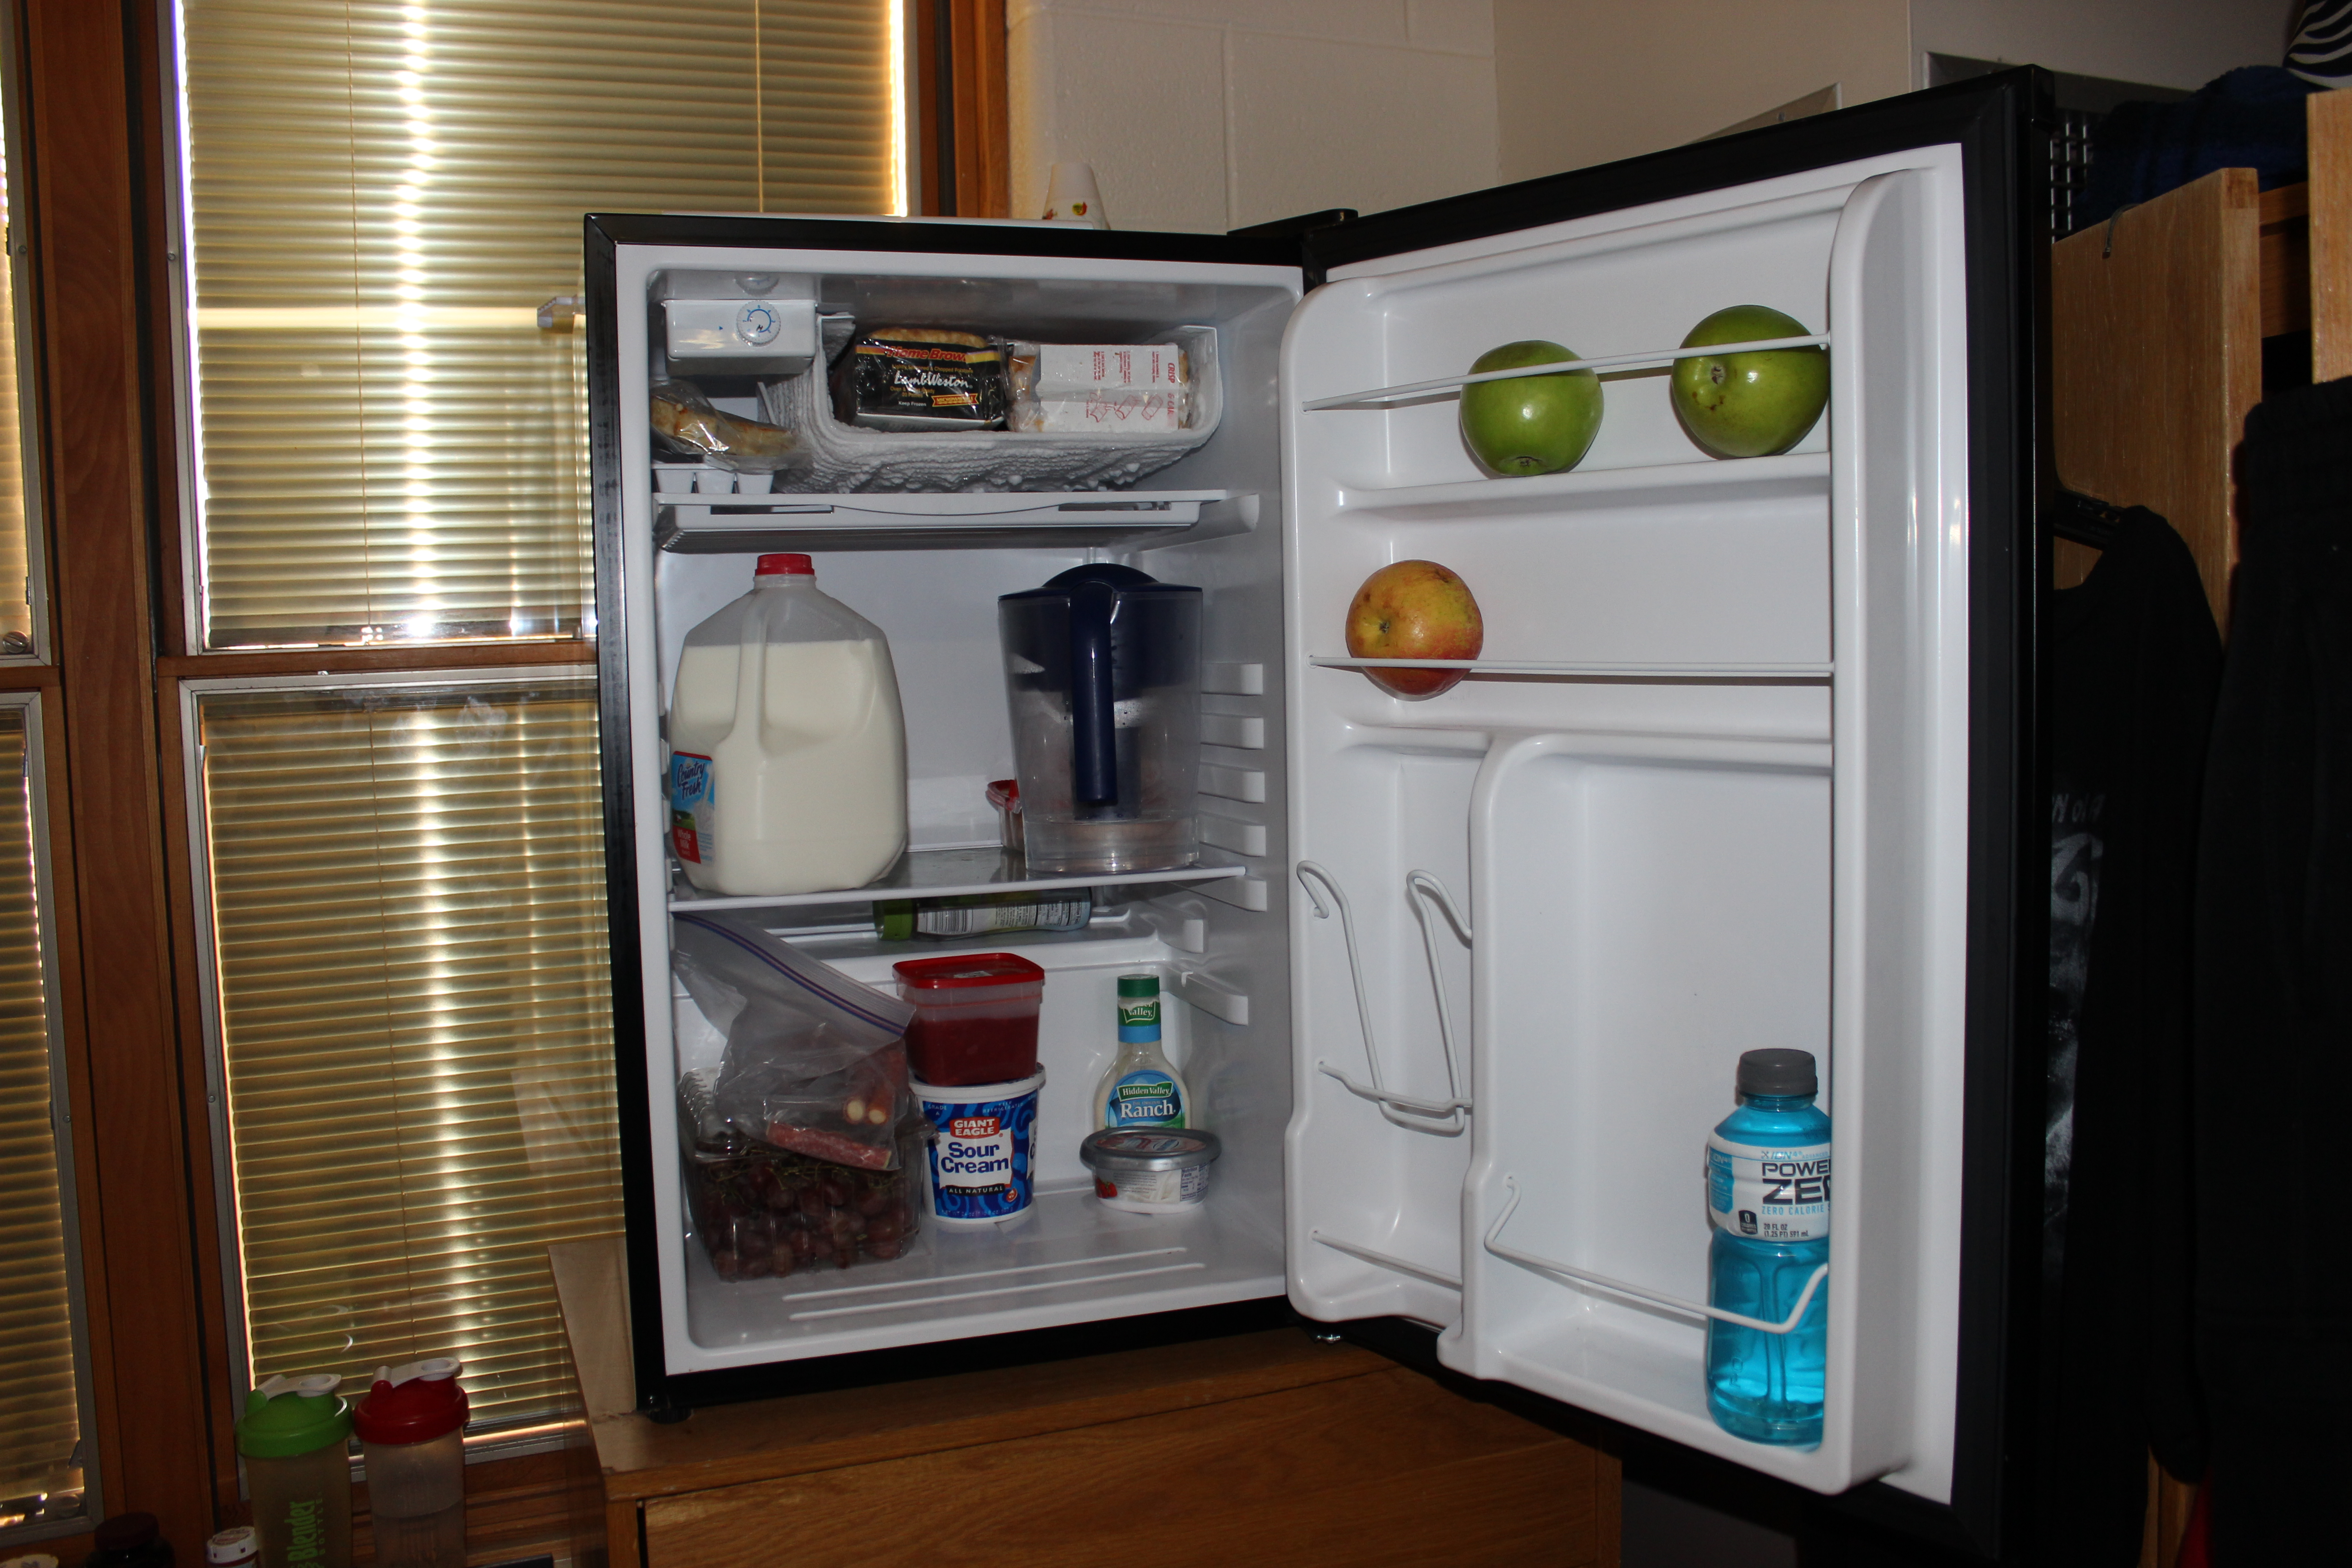 ... Dorm Room Anized · This Fridge Keeps Its Apples Segregated Based On The  Color Of Their Skin ... Part 17